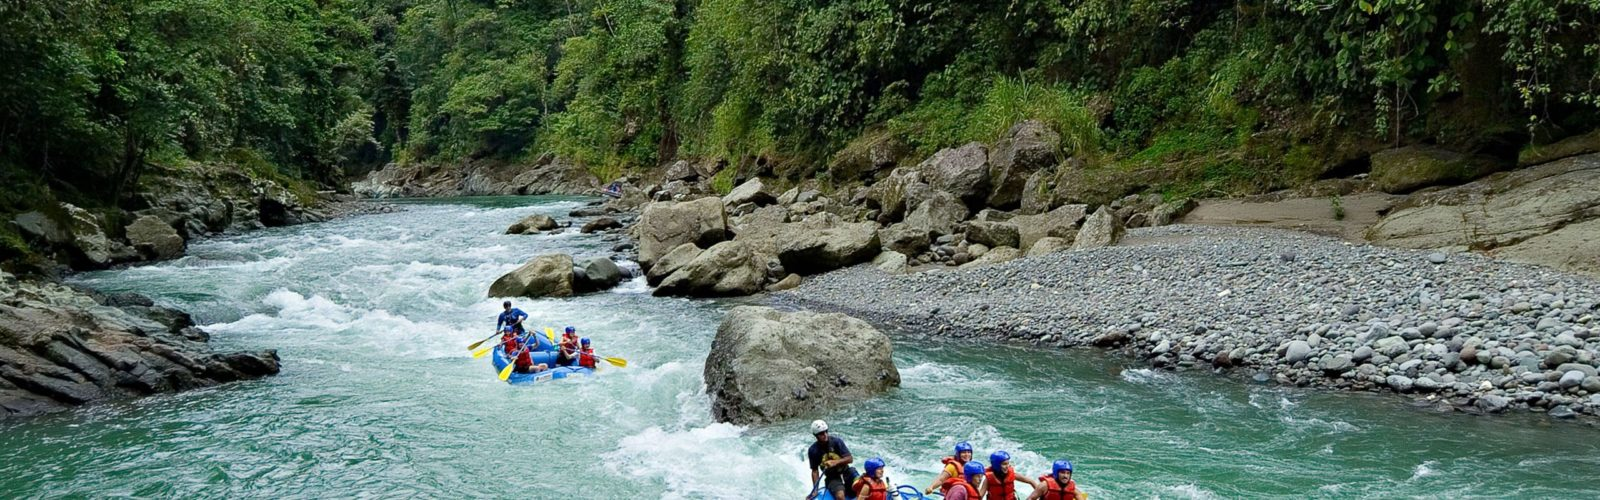 river-rafting-pacuare-reserve